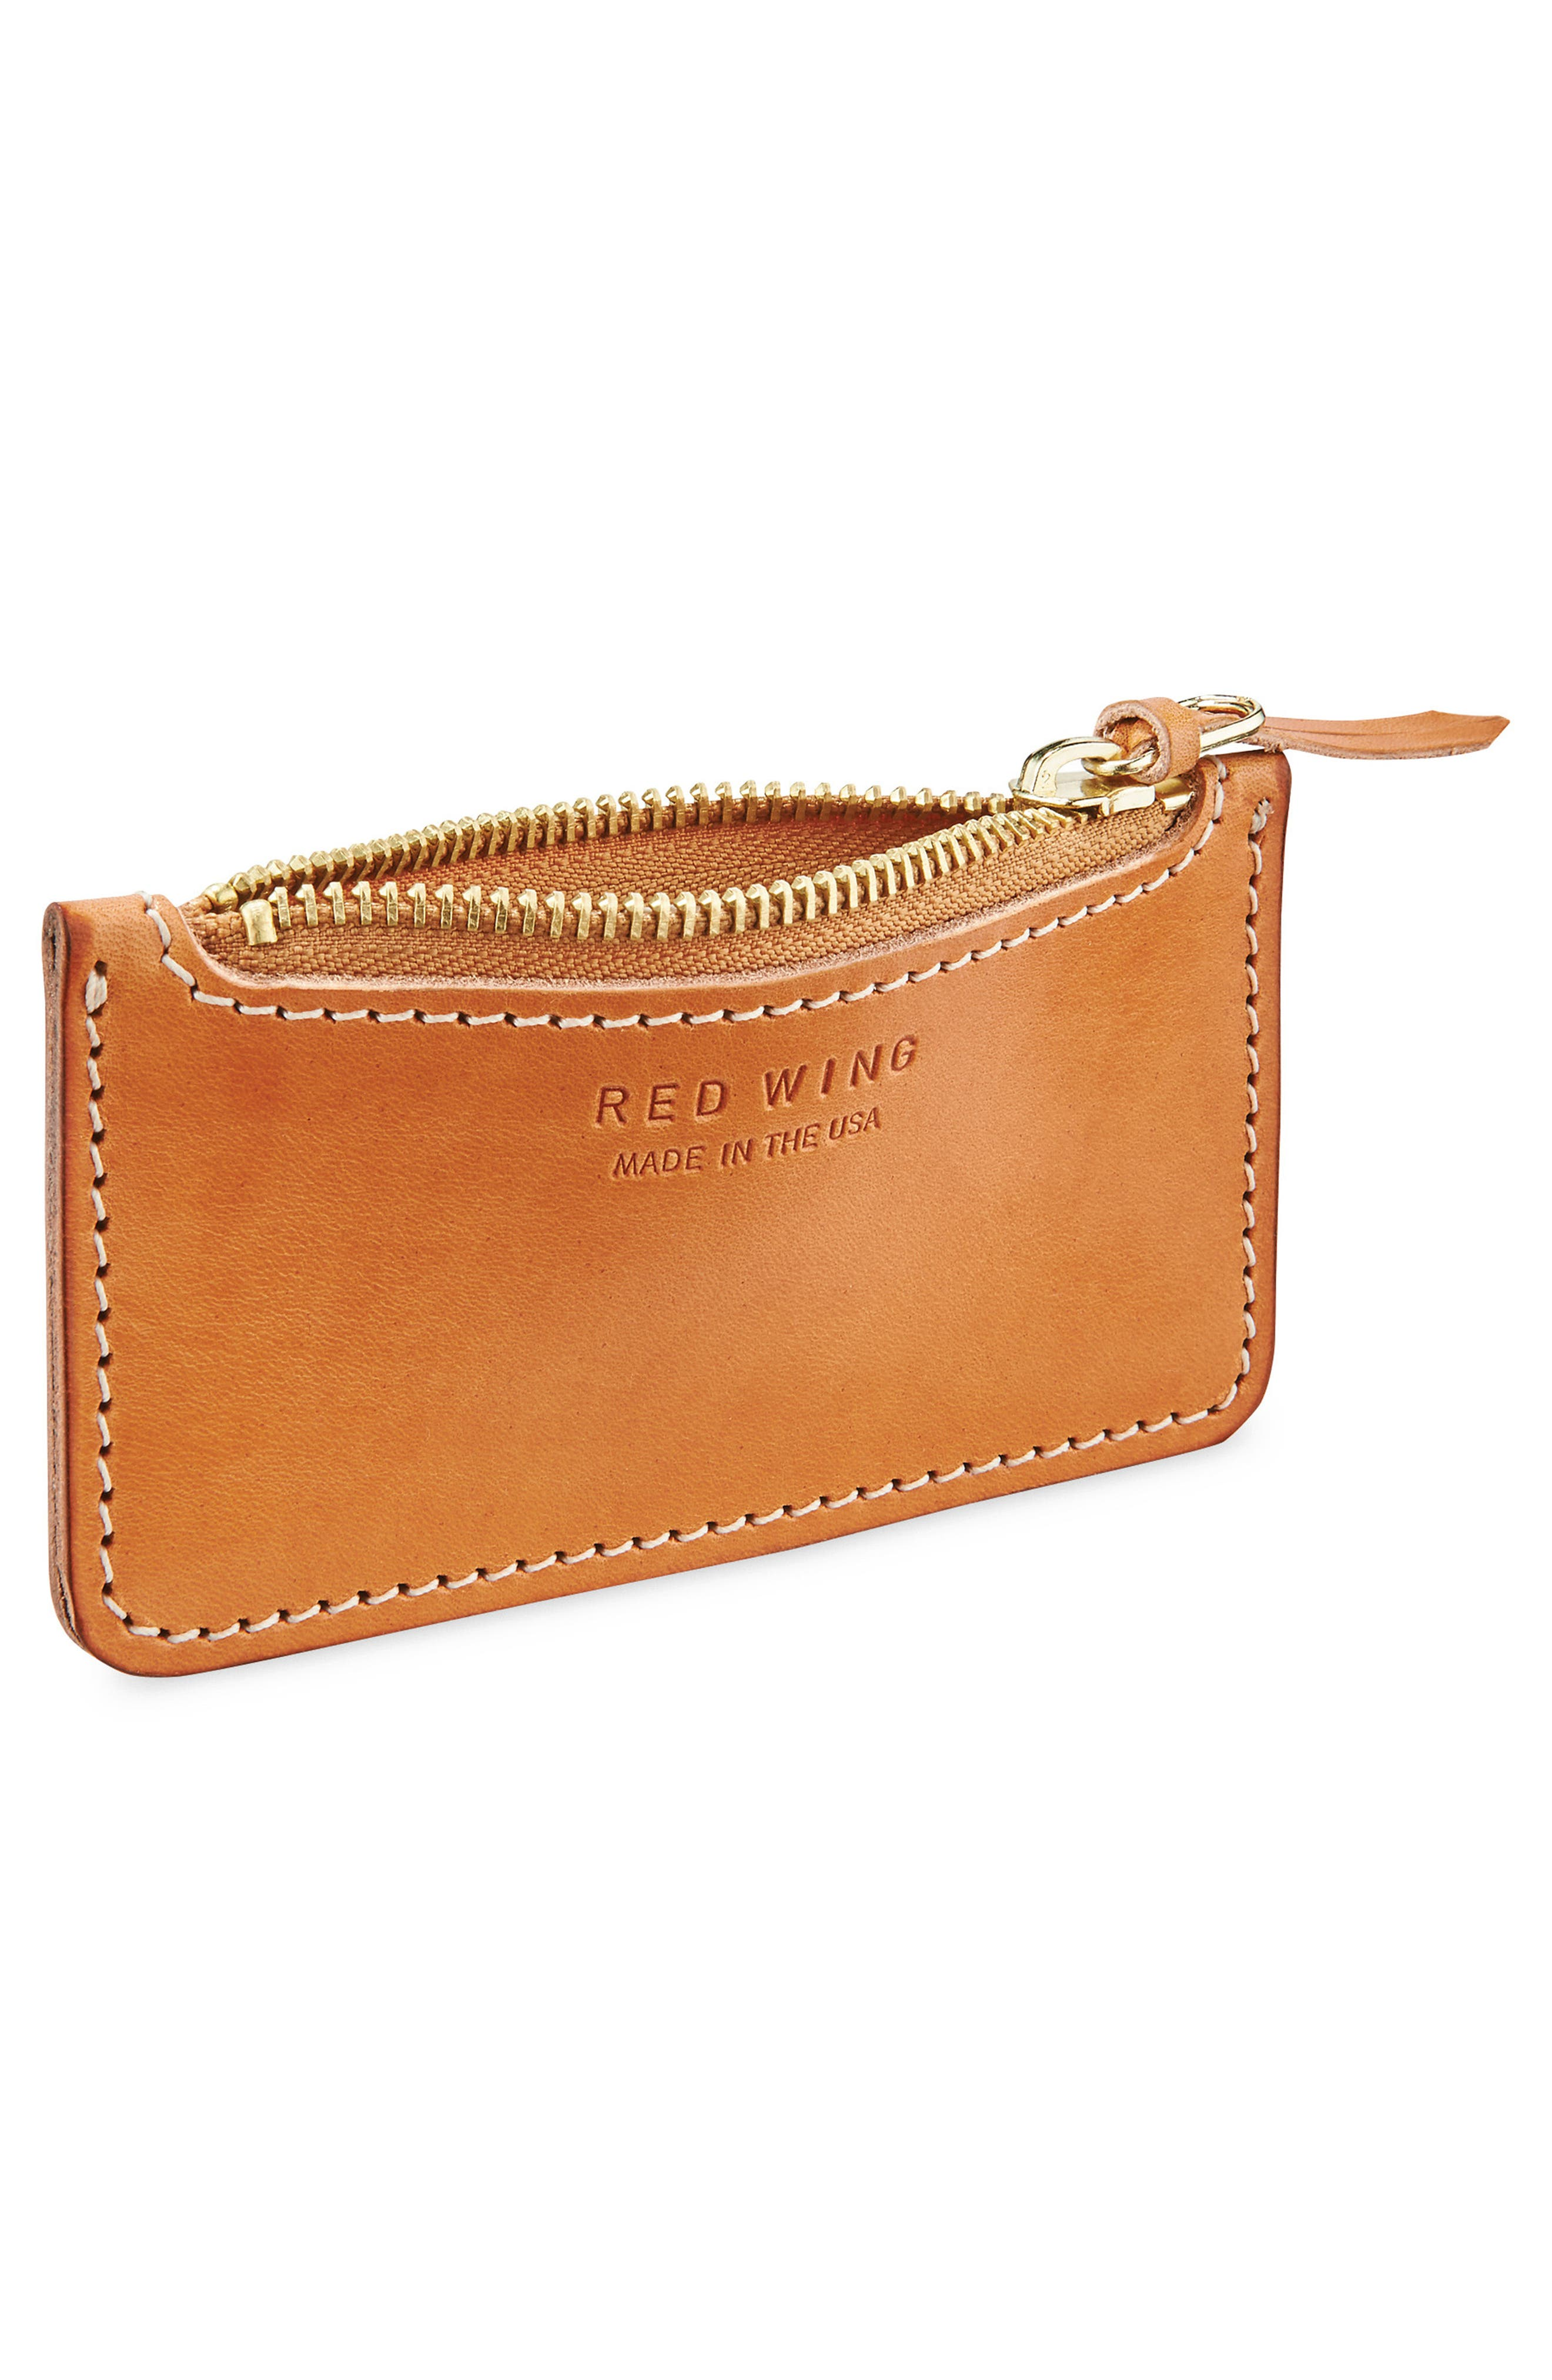 Once Leather Zipper Pouch,                             Alternate thumbnail 2, color,                             Tanned Vegetable